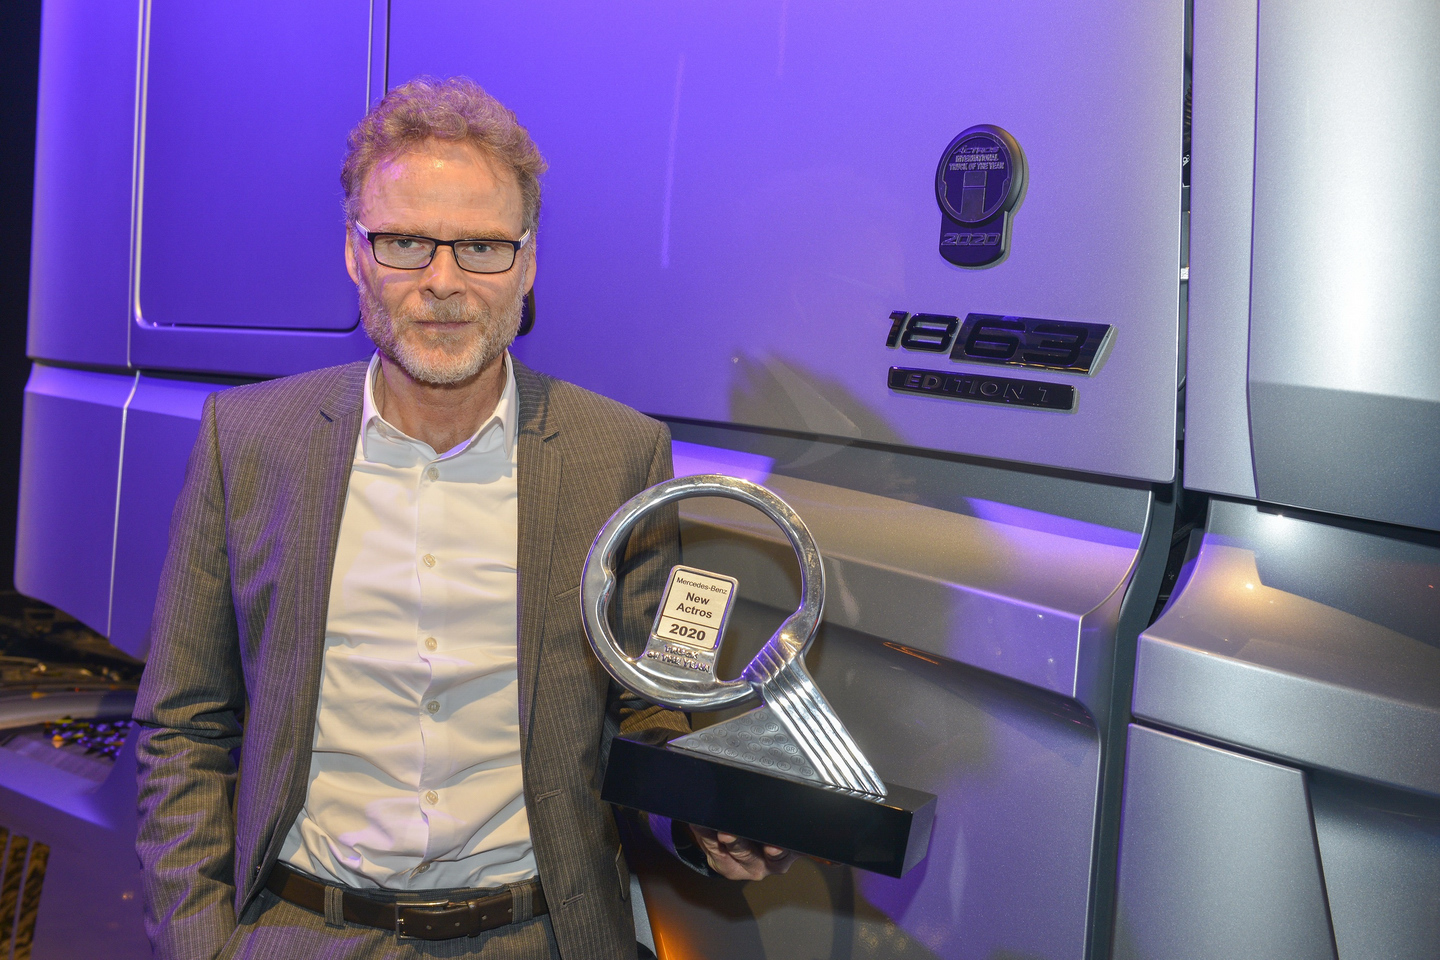 Mercedes Benz Actros Truck of the Year 2020 5